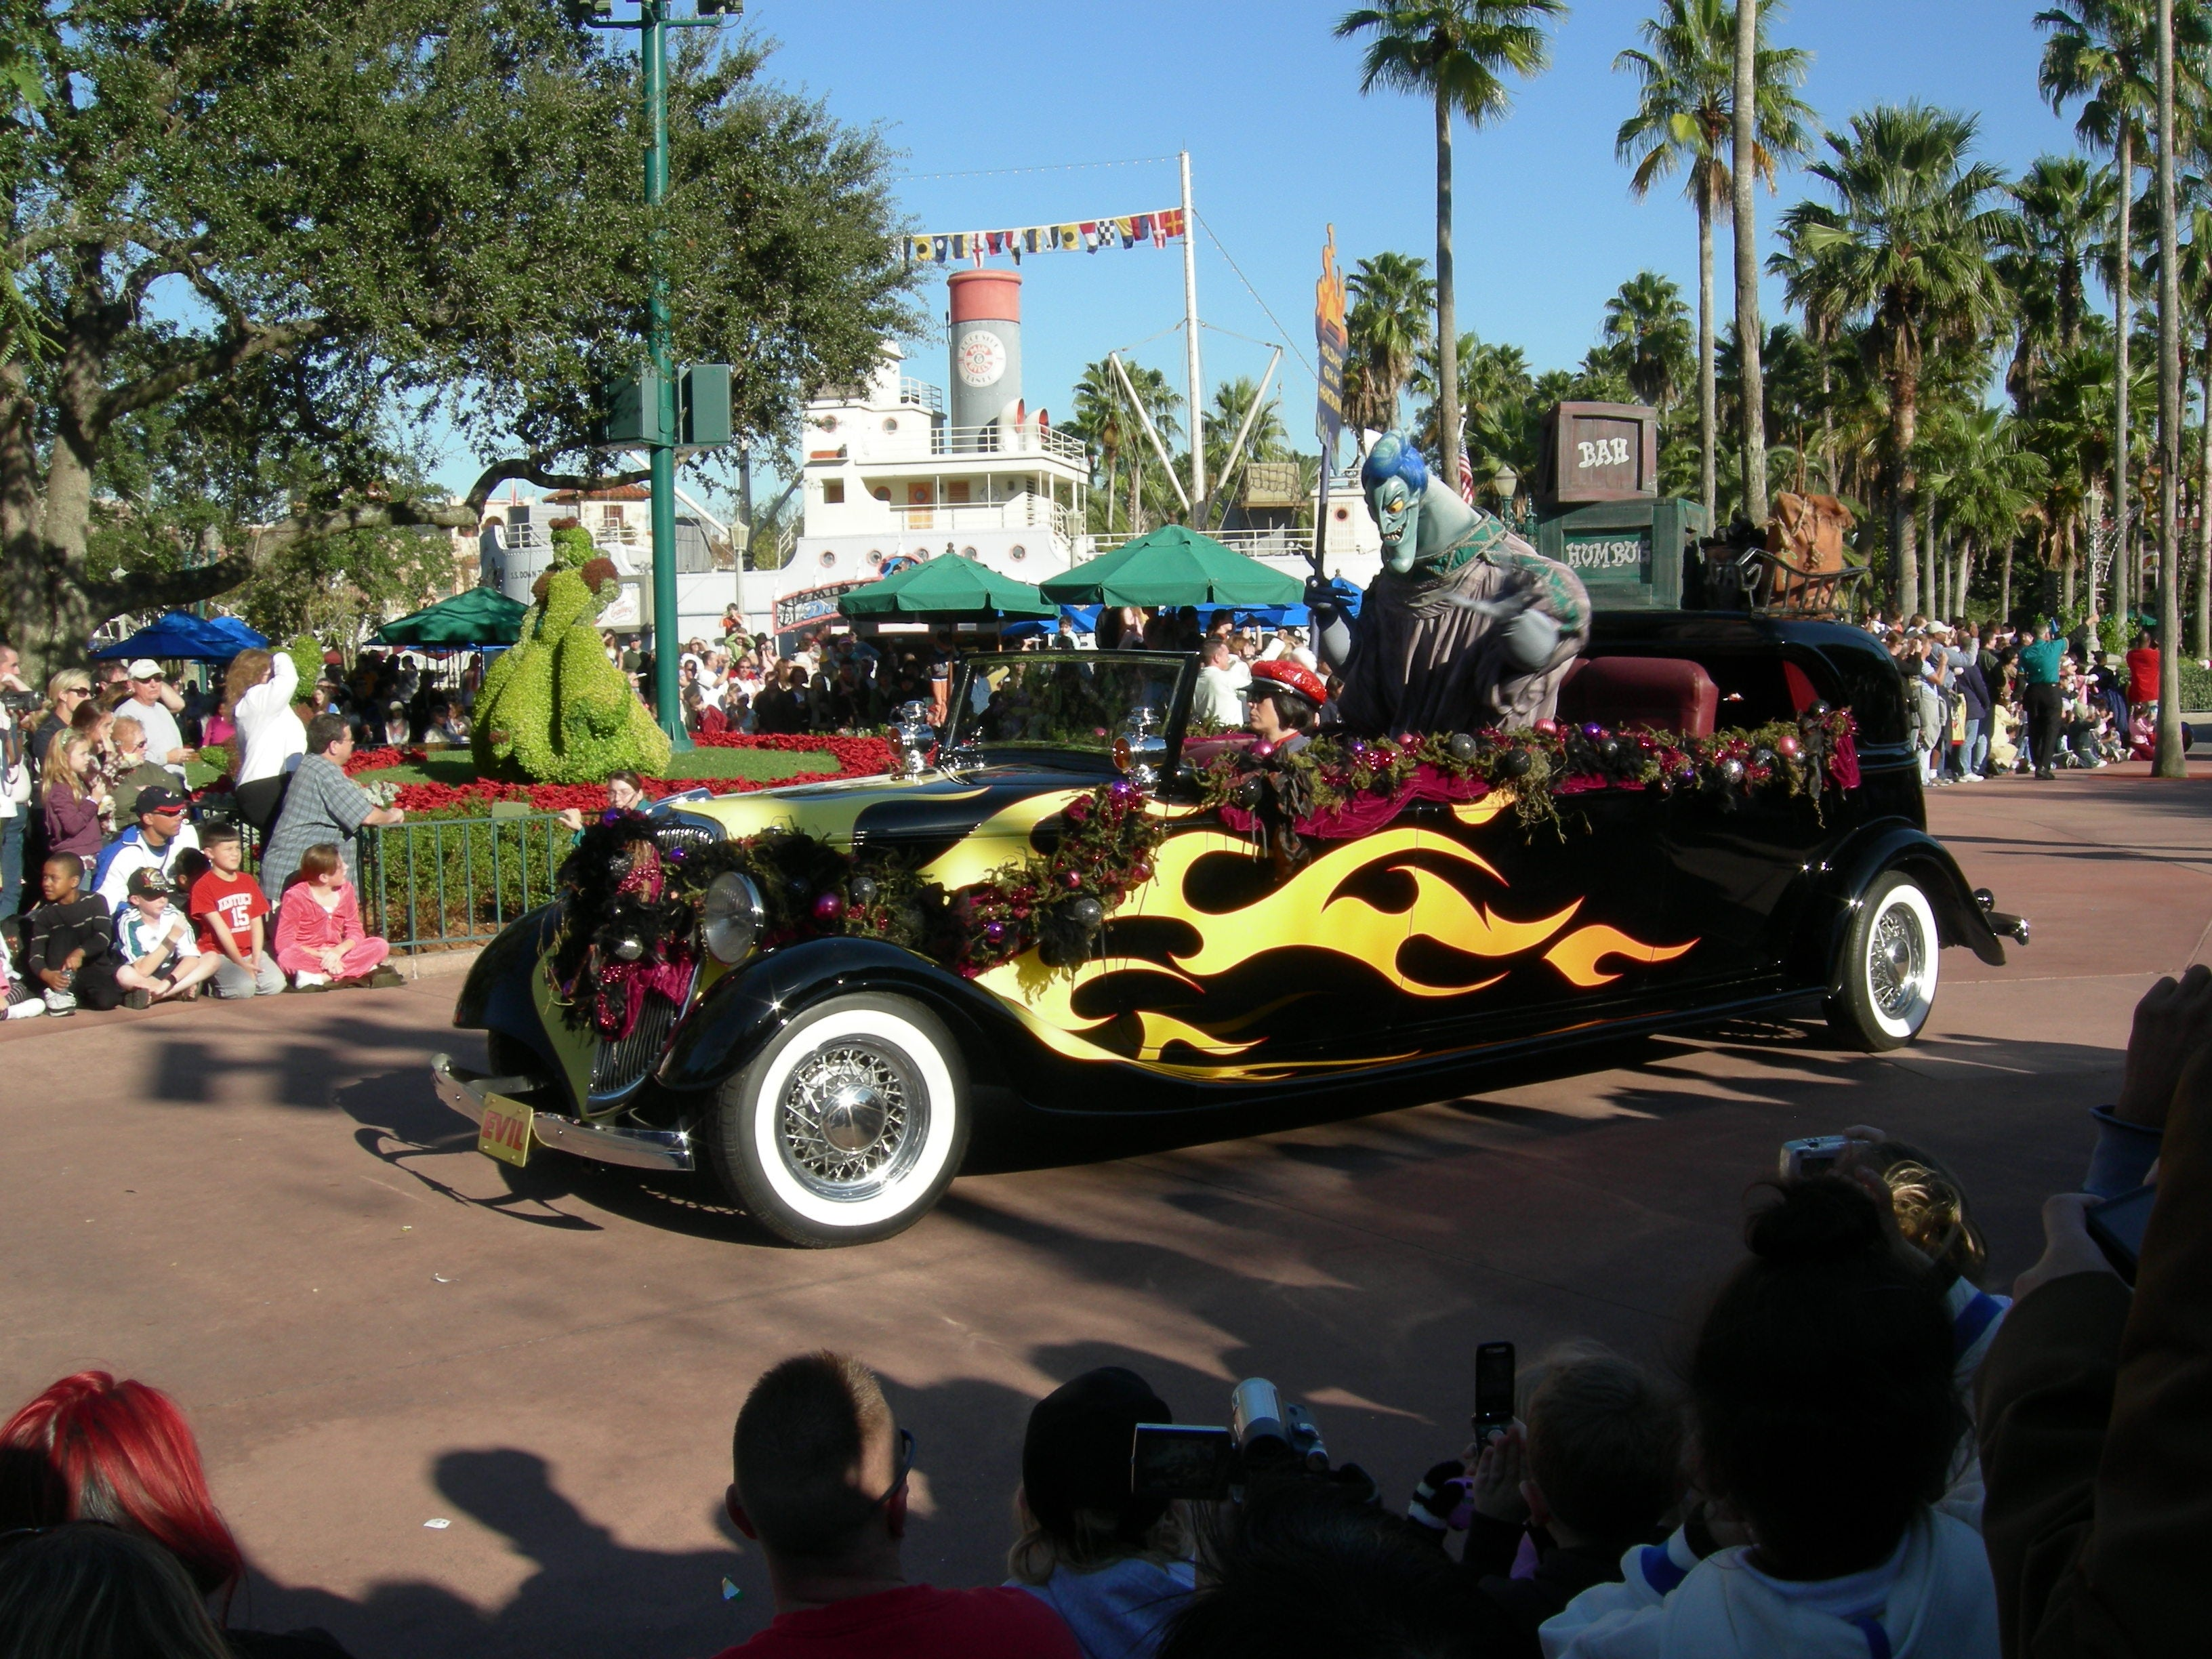 Carreras en Disney Parades (desfiles en los parques de Disney World)